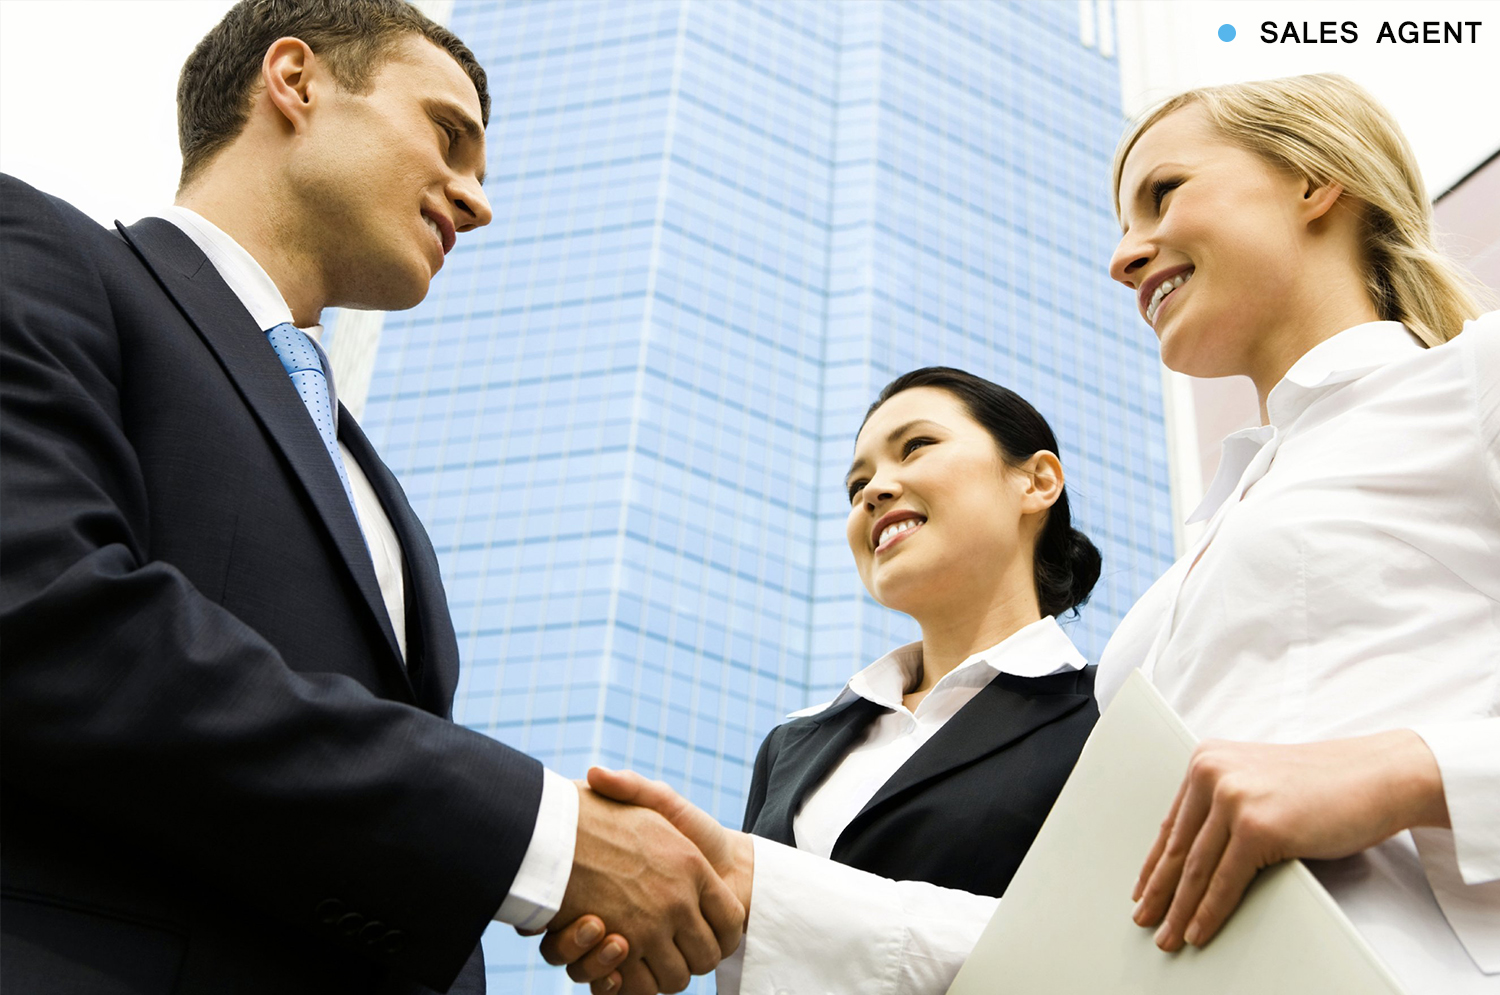 sales agent: a business for the most convincing people